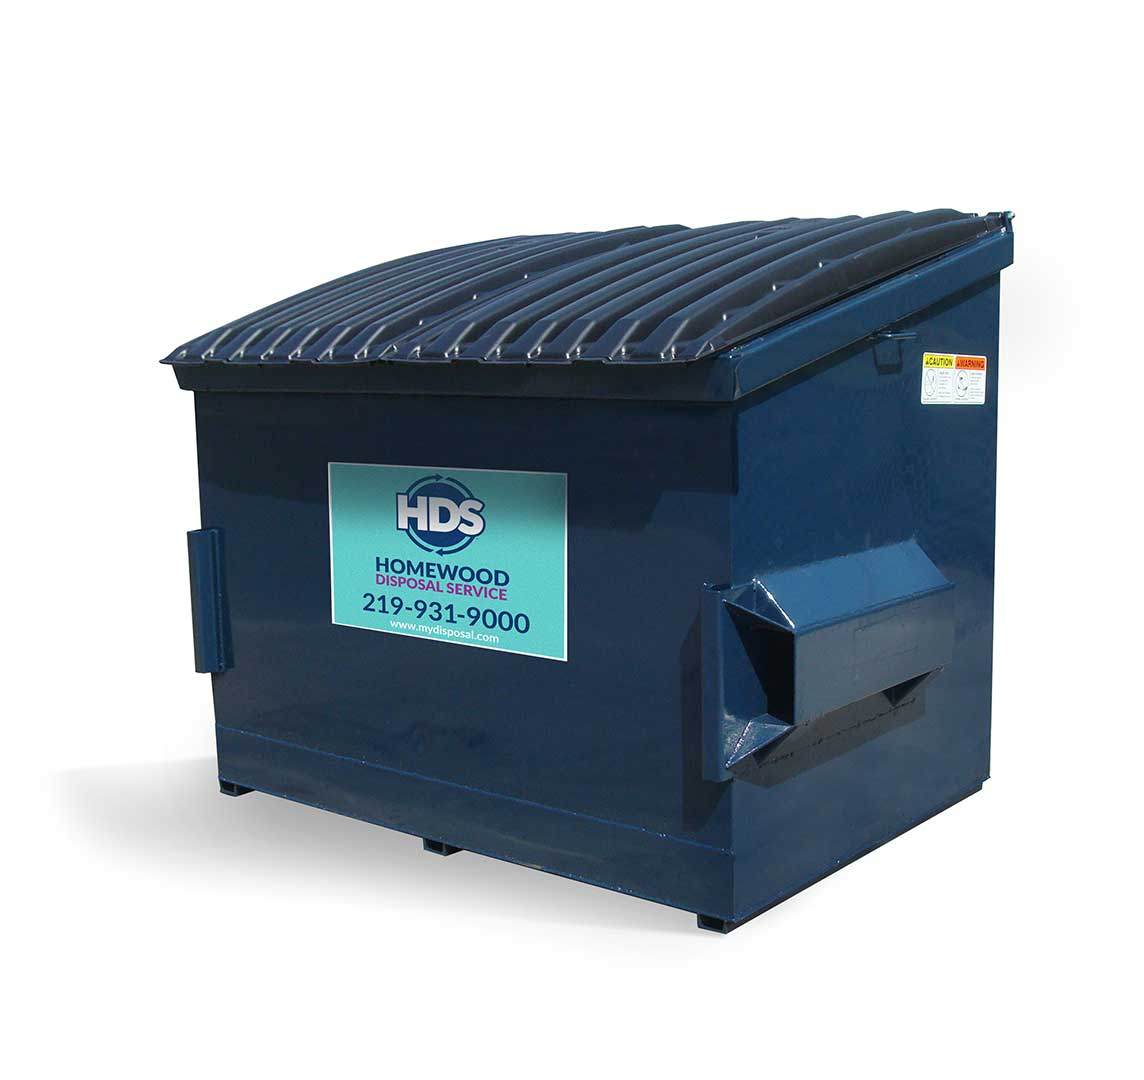 Commercial Garbage Picked Up Timely And Efficiently